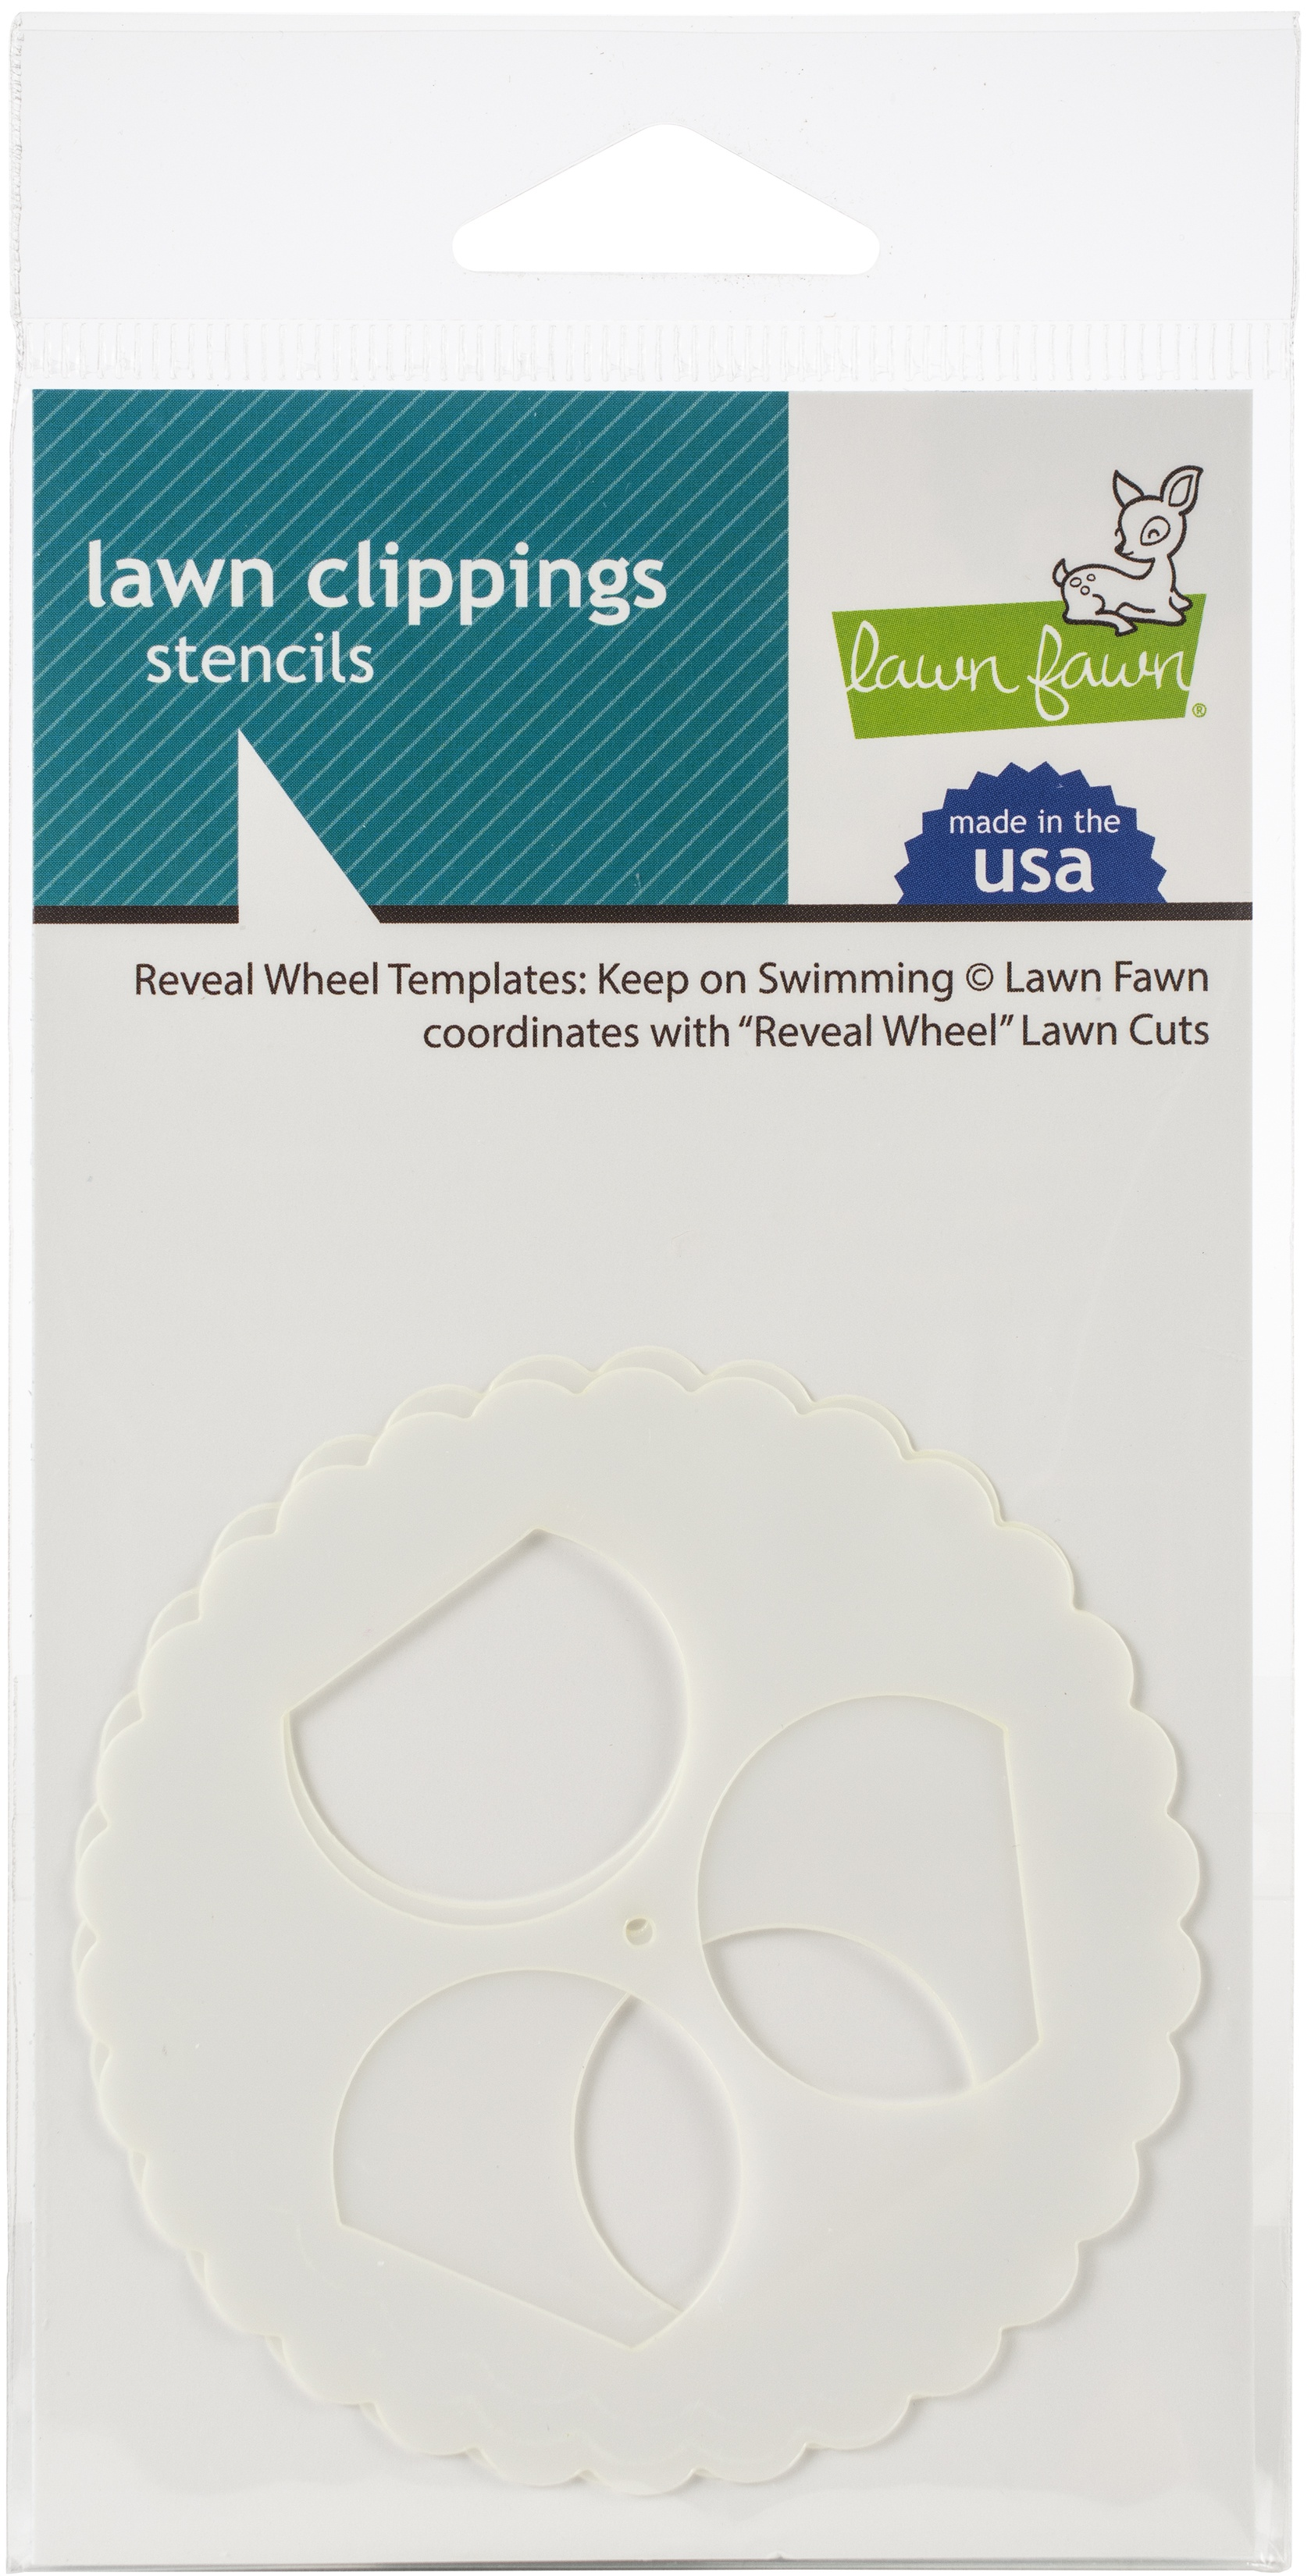 Lawn Clippings Stencils-Reveal Wheel: Keep On Swimming